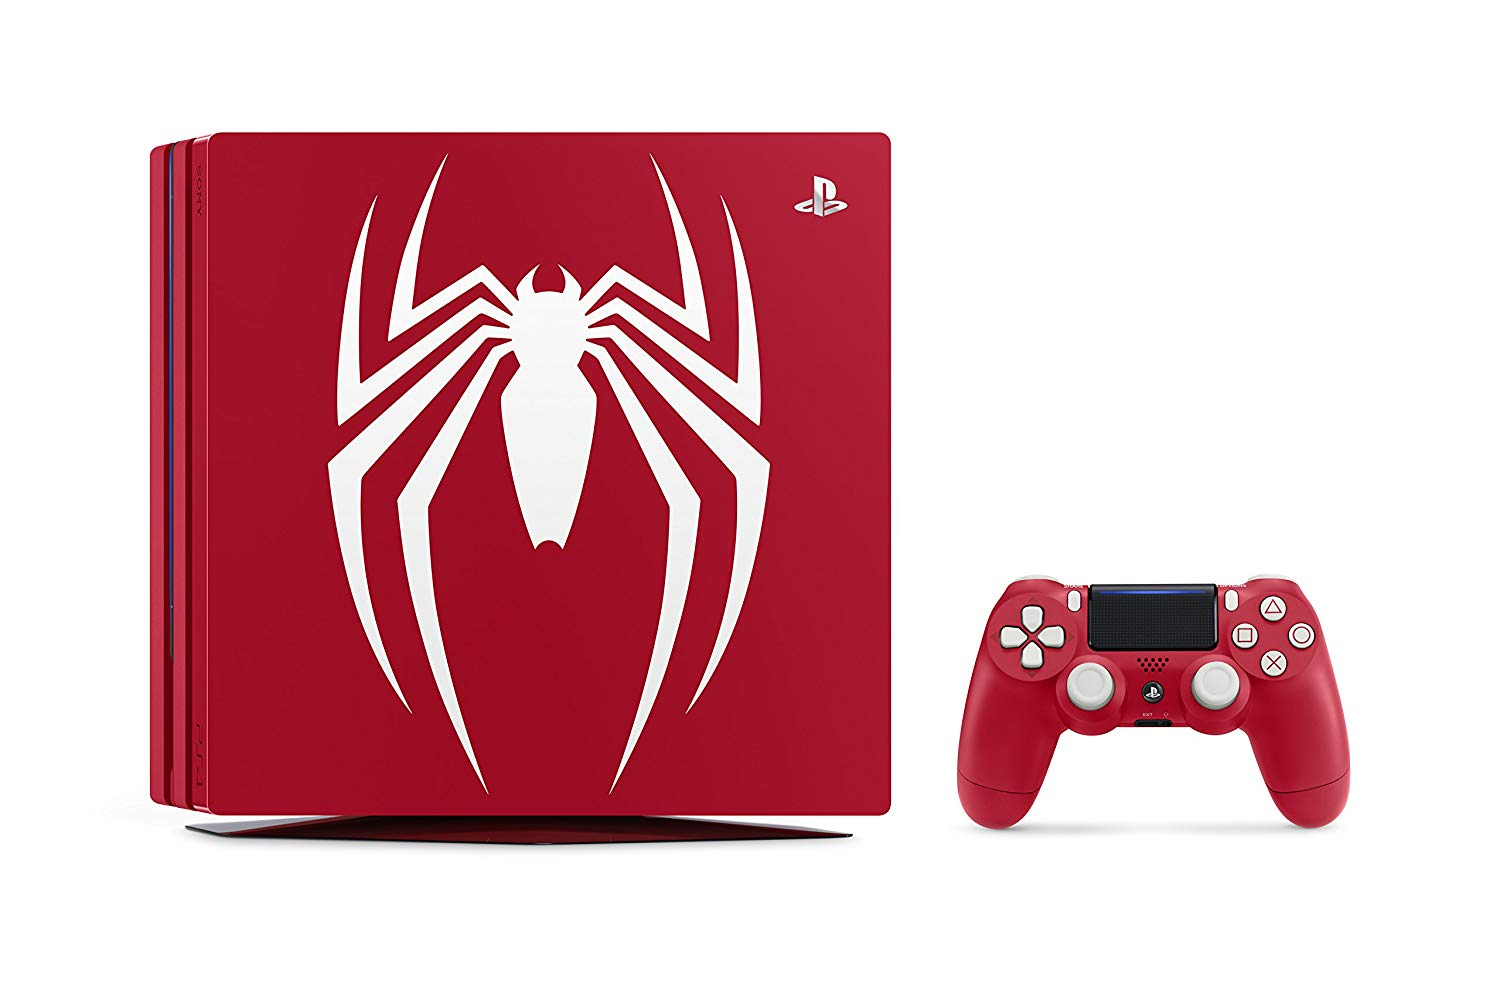 【あす楽】9/7発売★PlayStation 4 Pro Marvel's Spider-Man Limited Edition★CUHJ-10027 スパイダーマン マーベル4948872015677